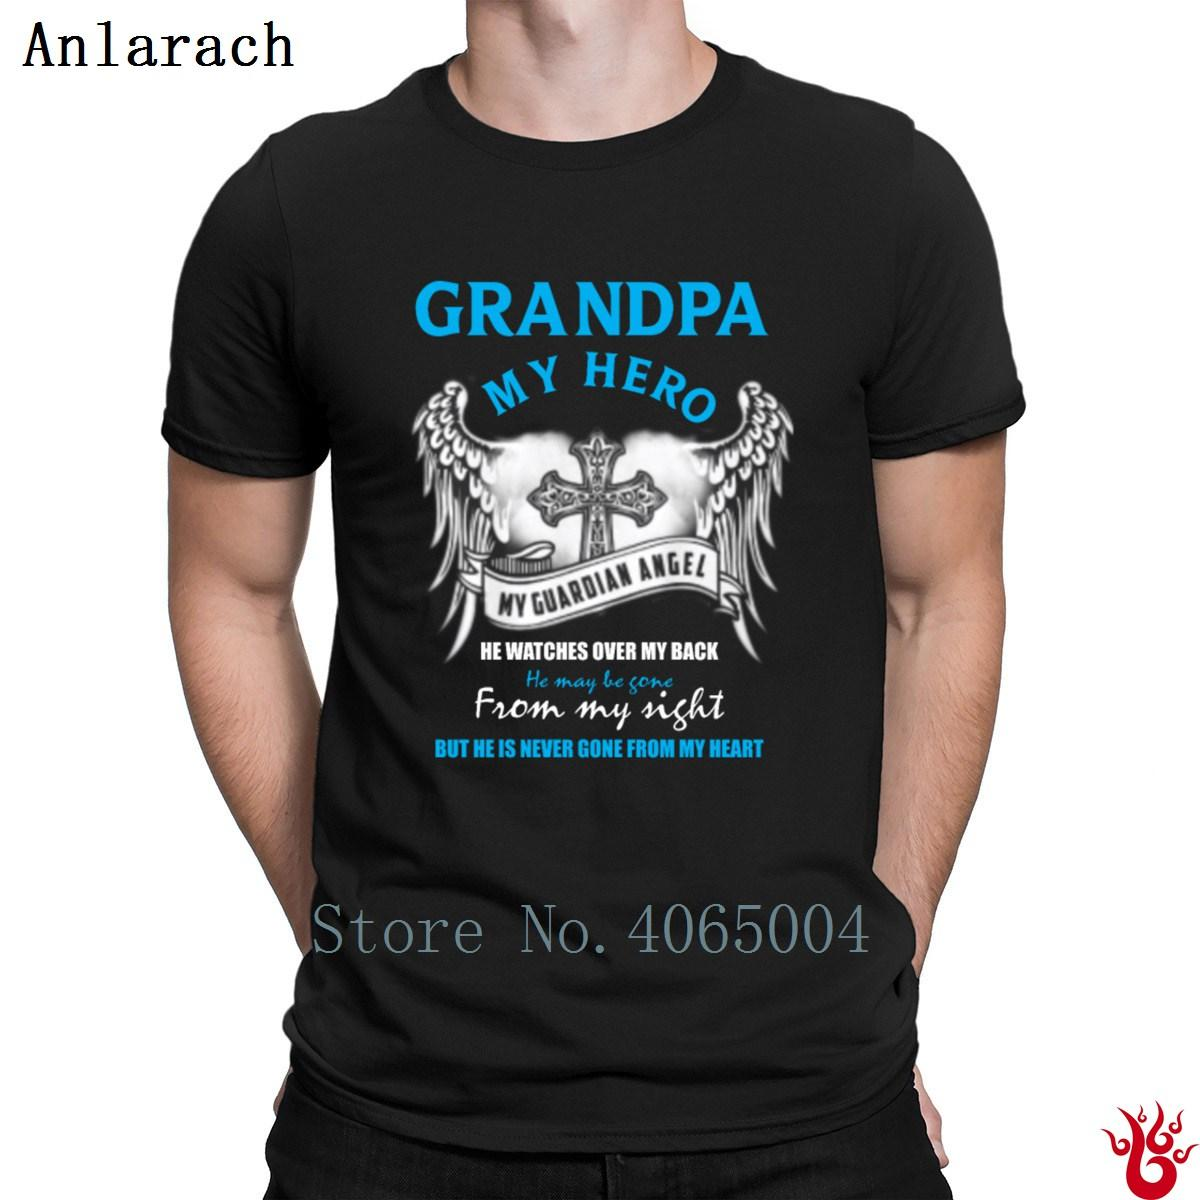 4924d822b ... father; grandpa my hero my guardian angel tshirts leisure leisure fit  crew ...